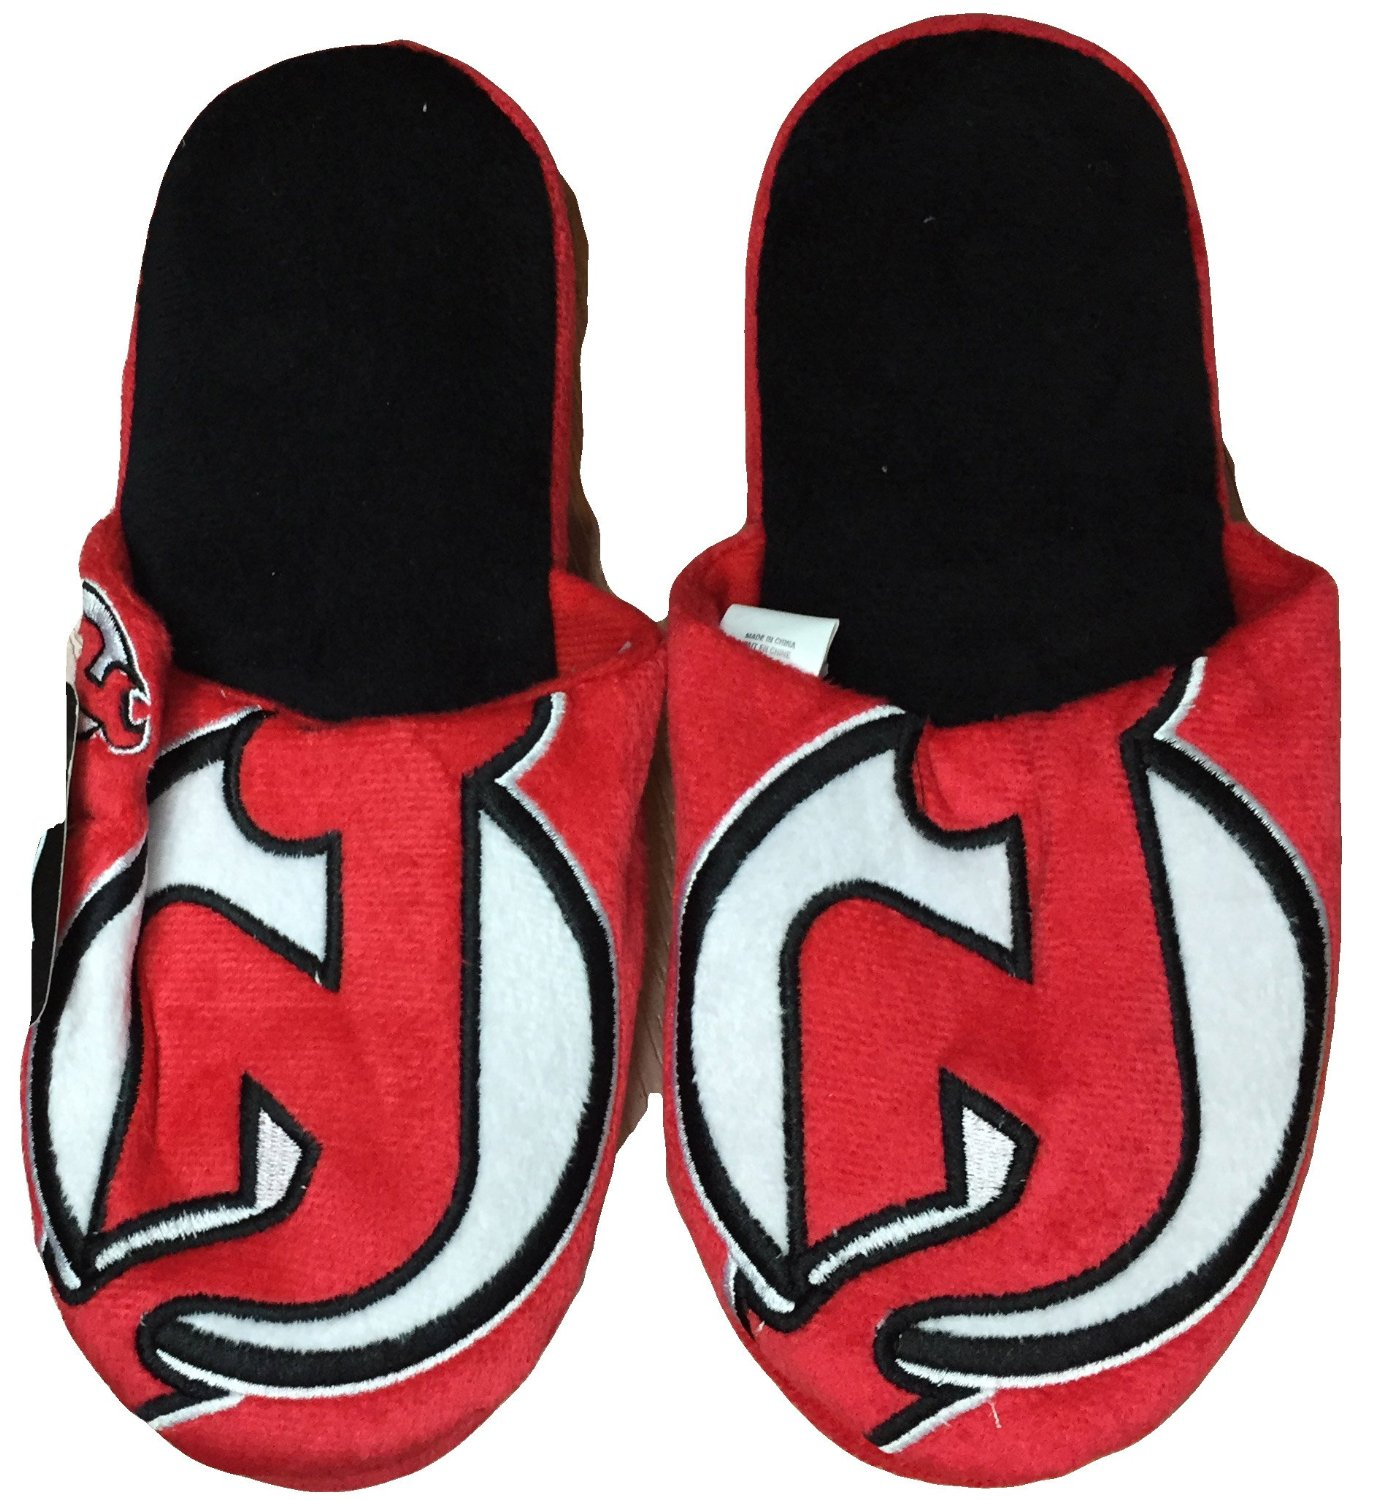 NHL New Jersey Devils Official Slippers by Forever Collectibles (XL (13-14))